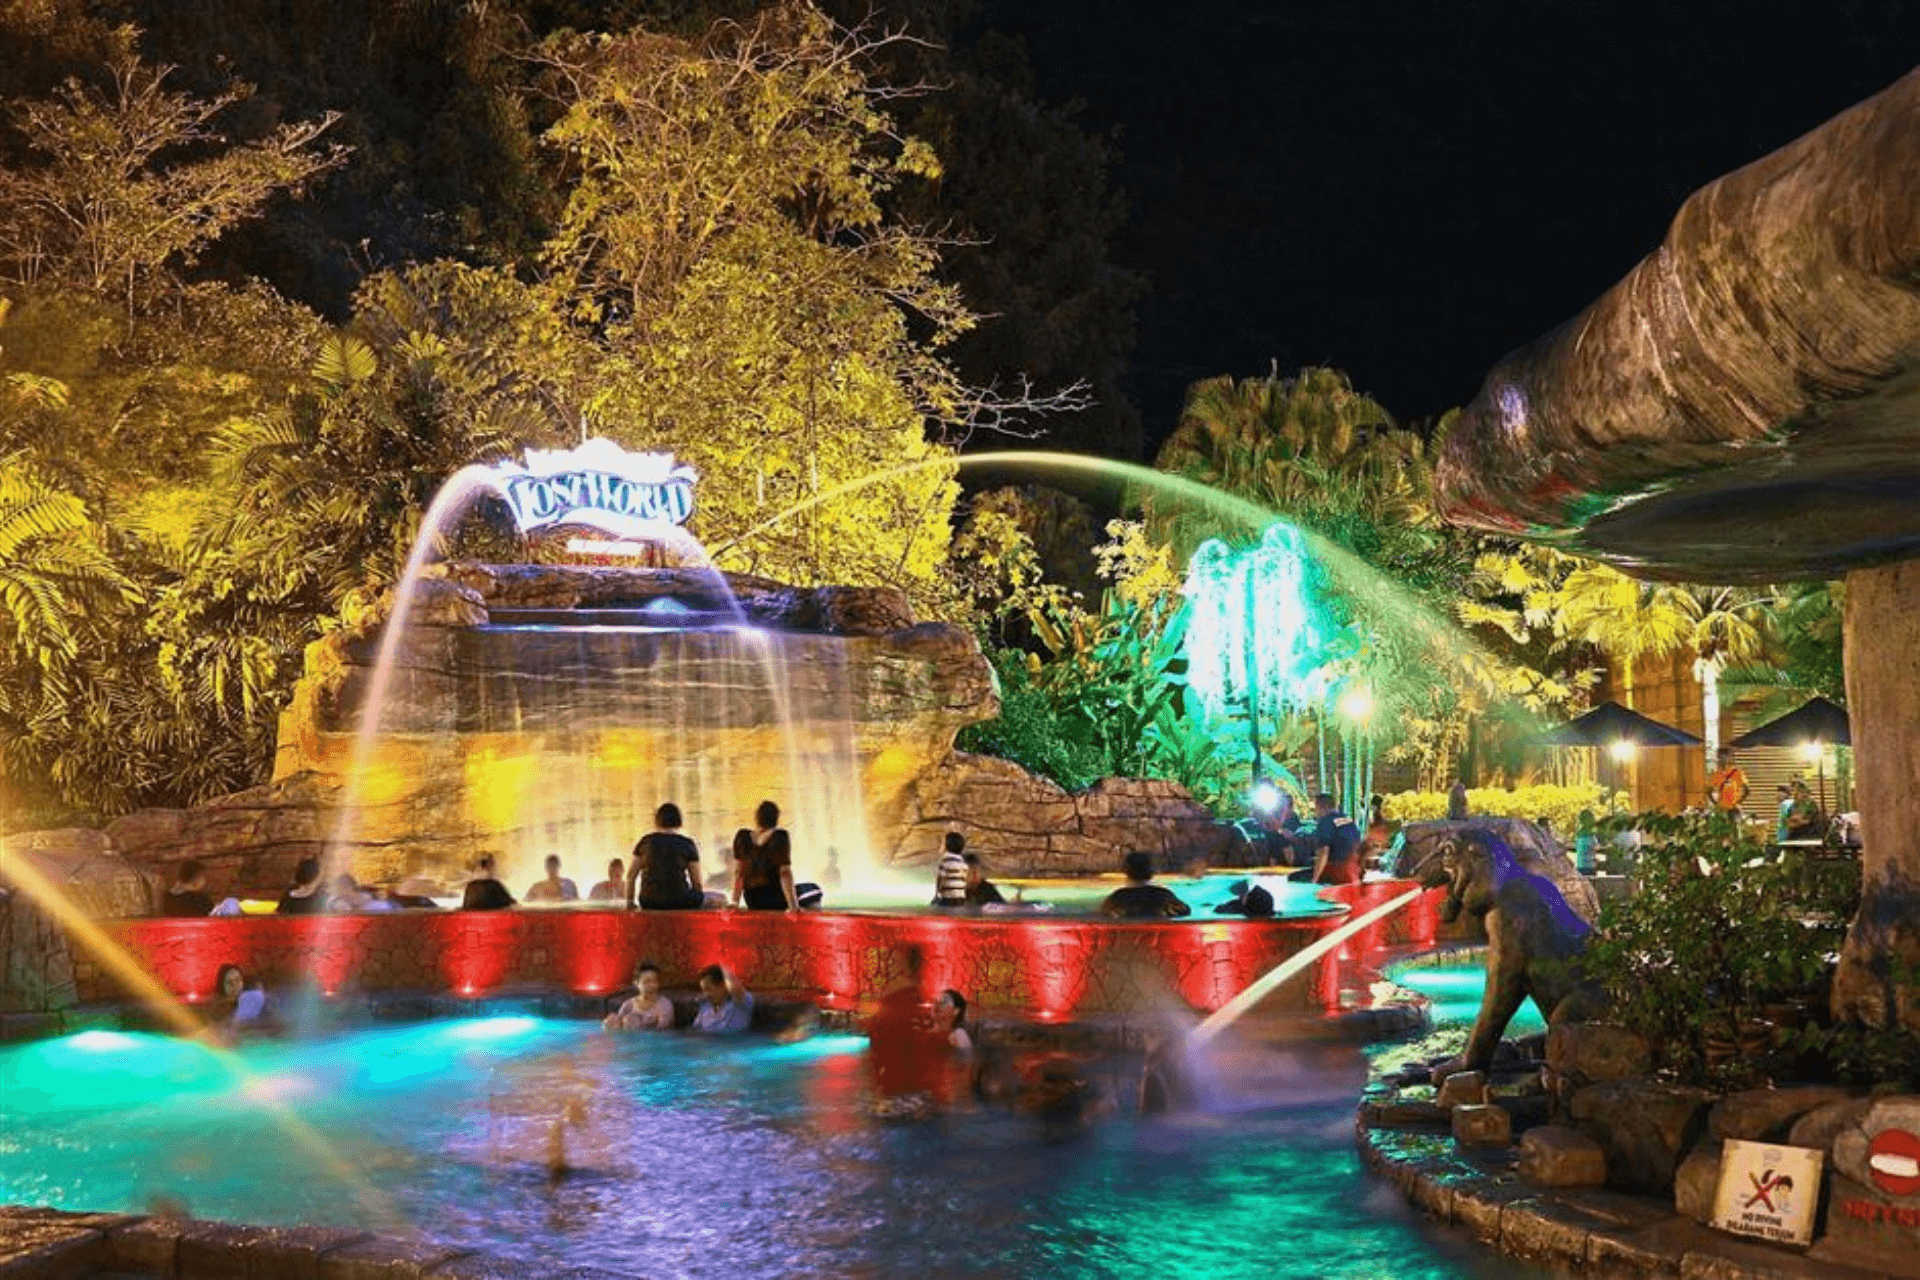 The Star Lost World of Tambun a popular destination